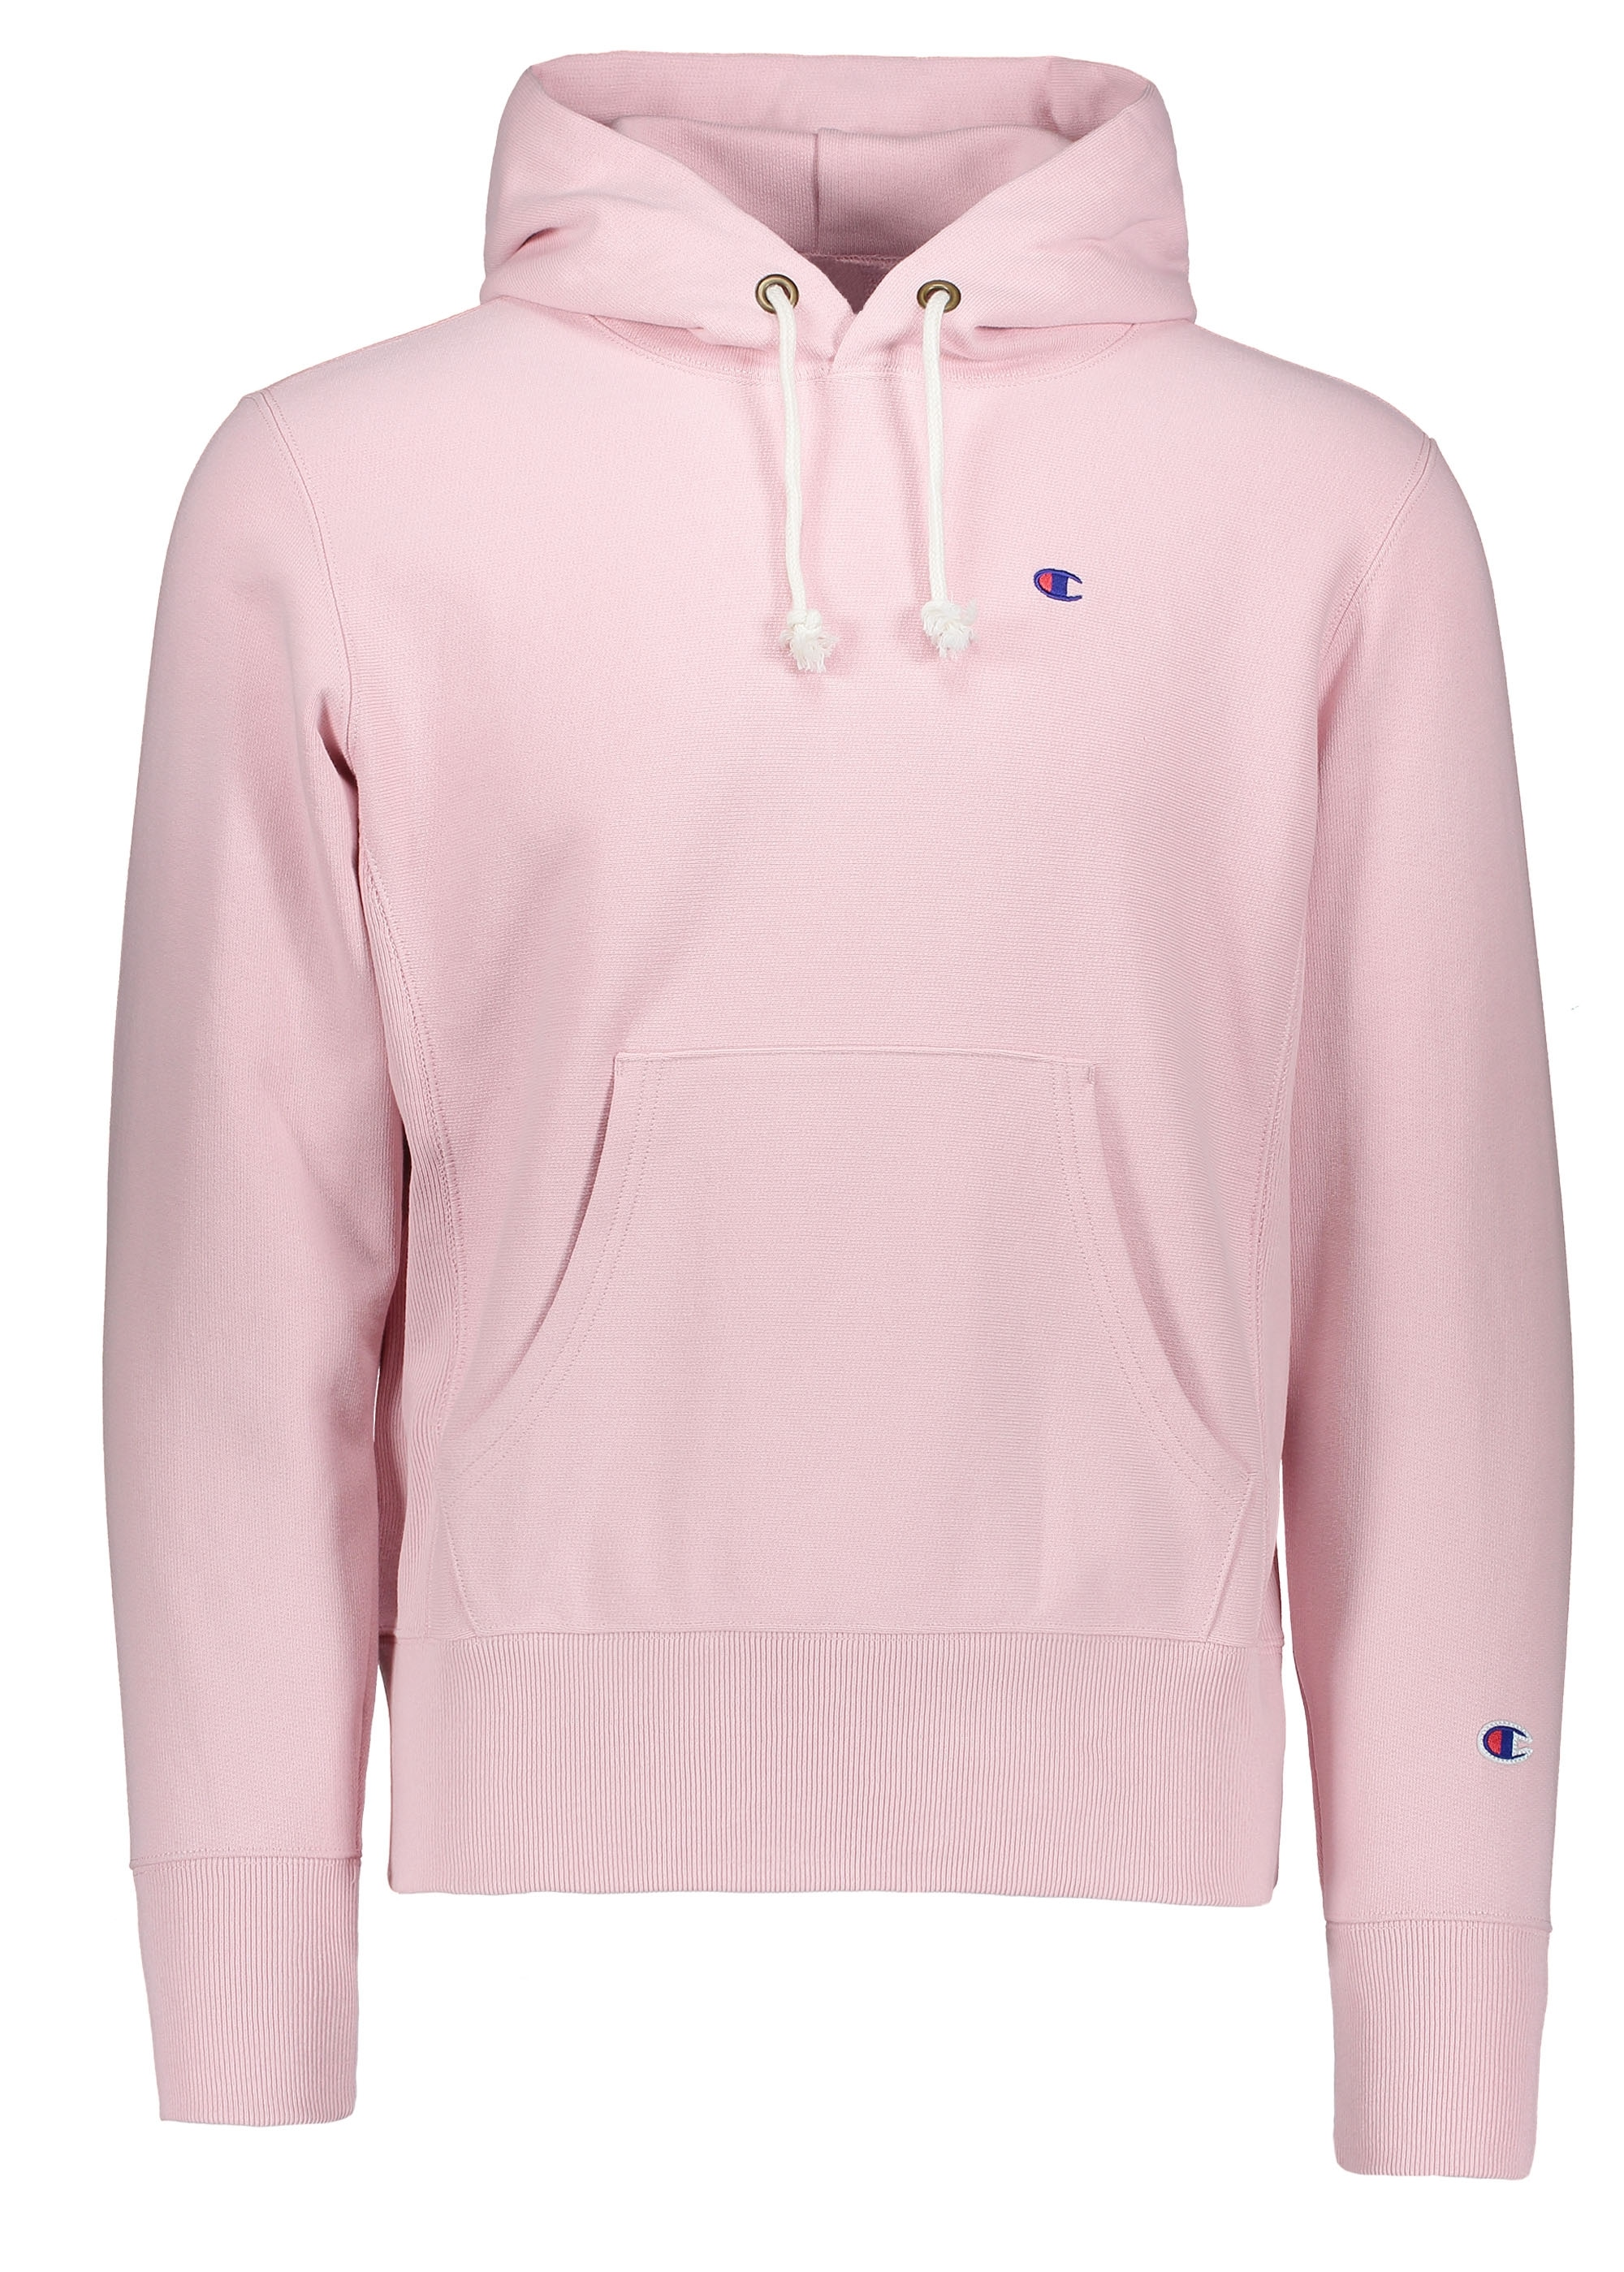 Champion Hooded Sweatshirt - Pink - Triads Mens from Triads UK ea49132e563e